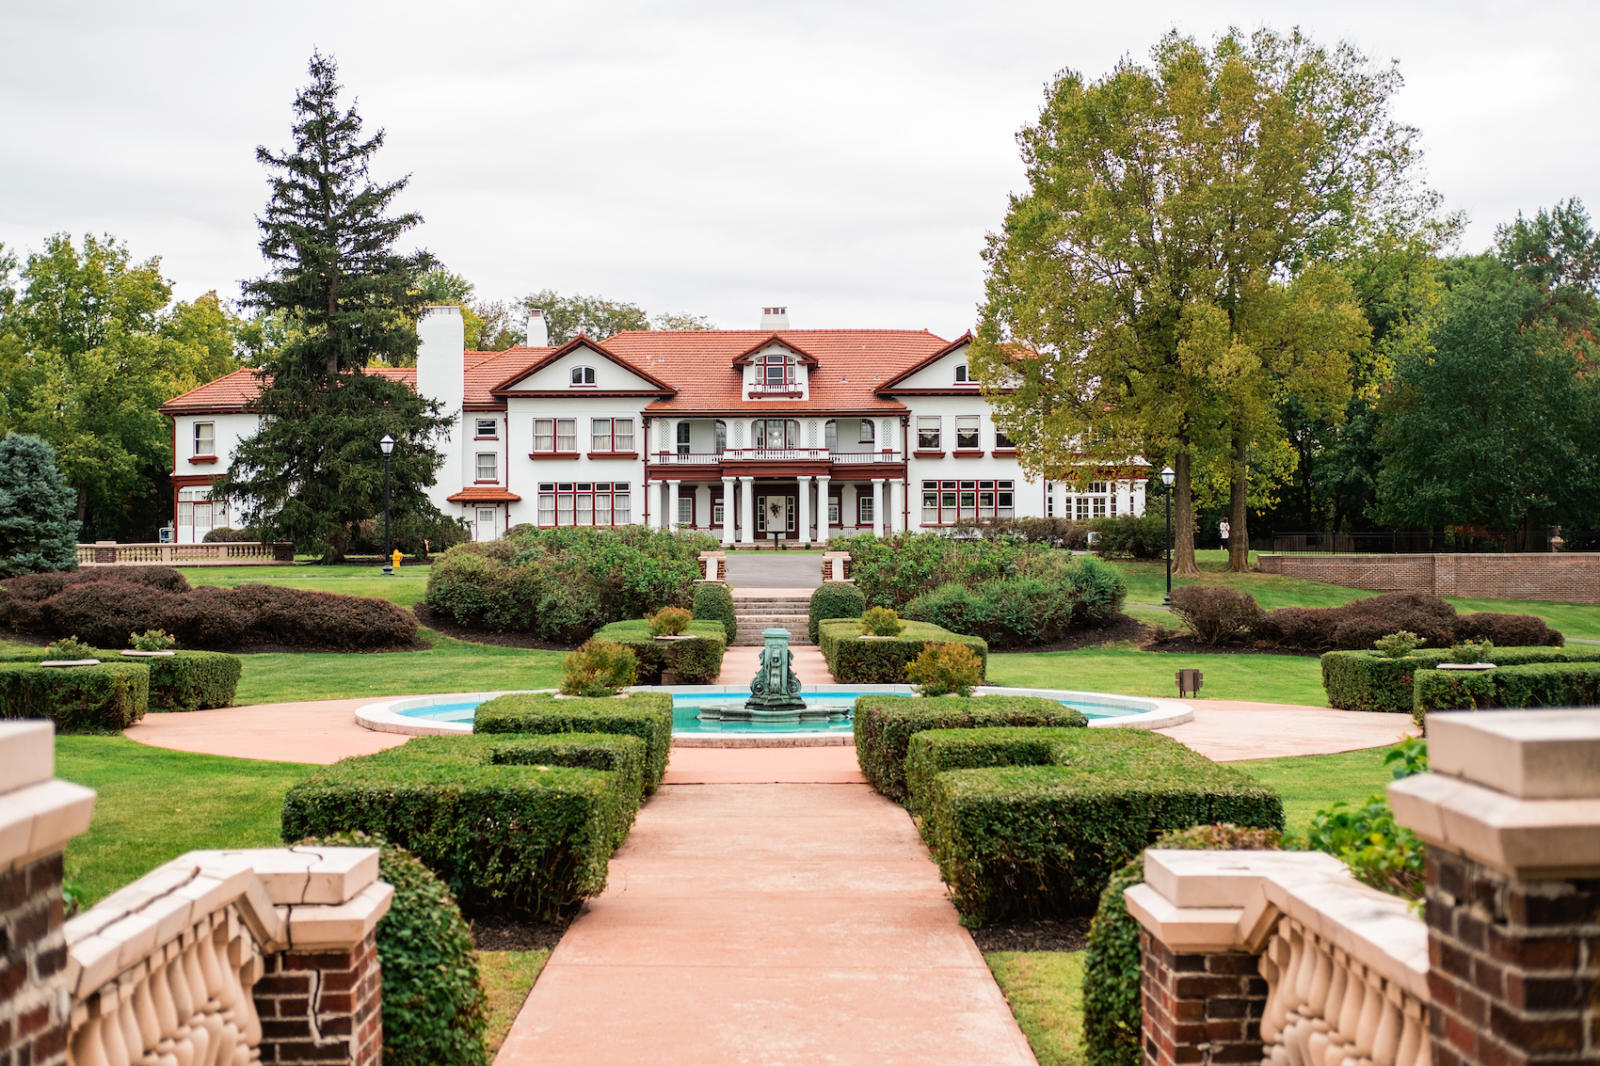 wide-angle exterior of completed longview mansion development project with fountain and bushes